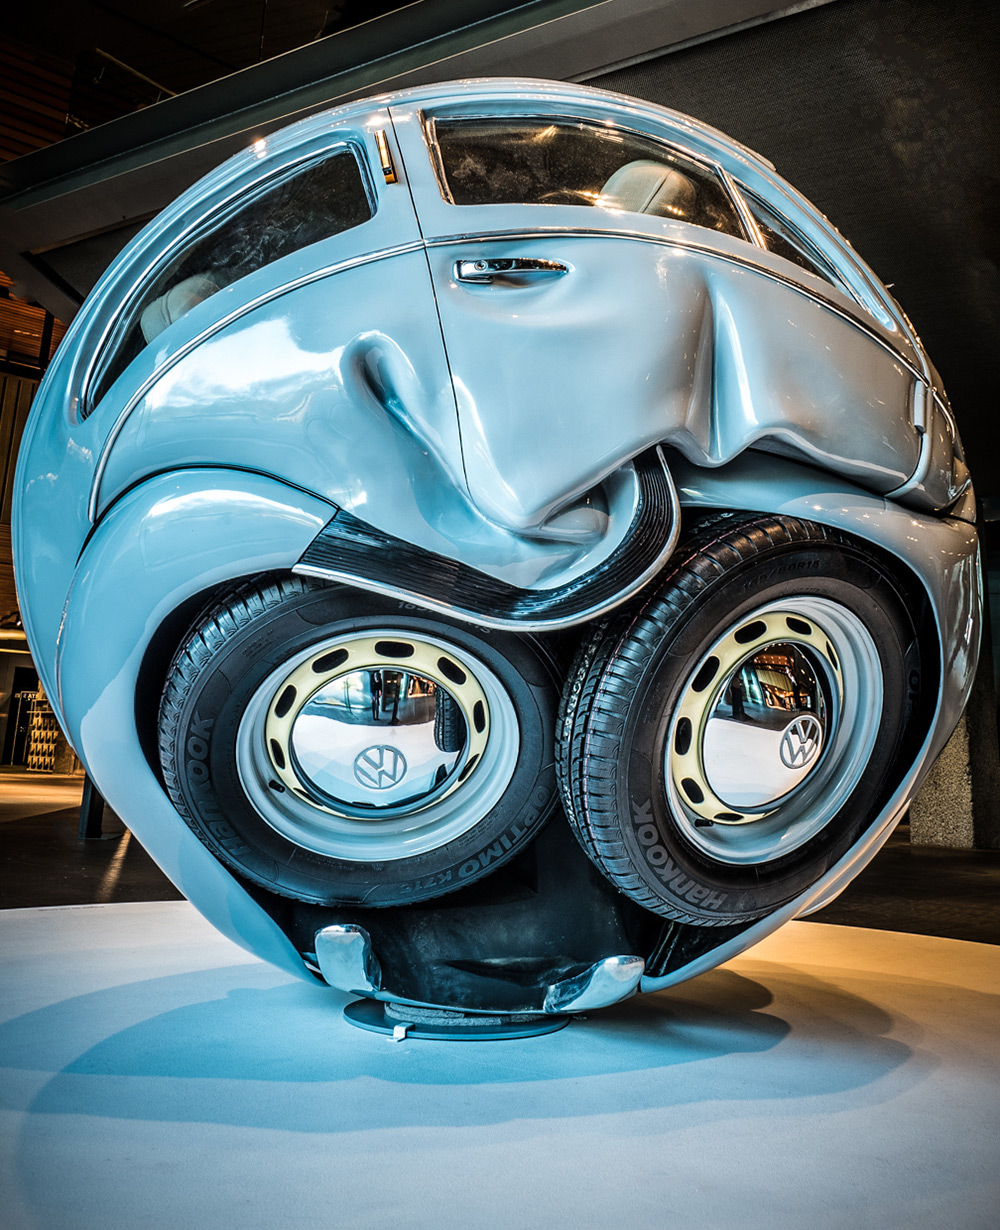 vw cars compressed into perfect spheres and cubes by ichwan noorby christopher jobson on august 13 2016